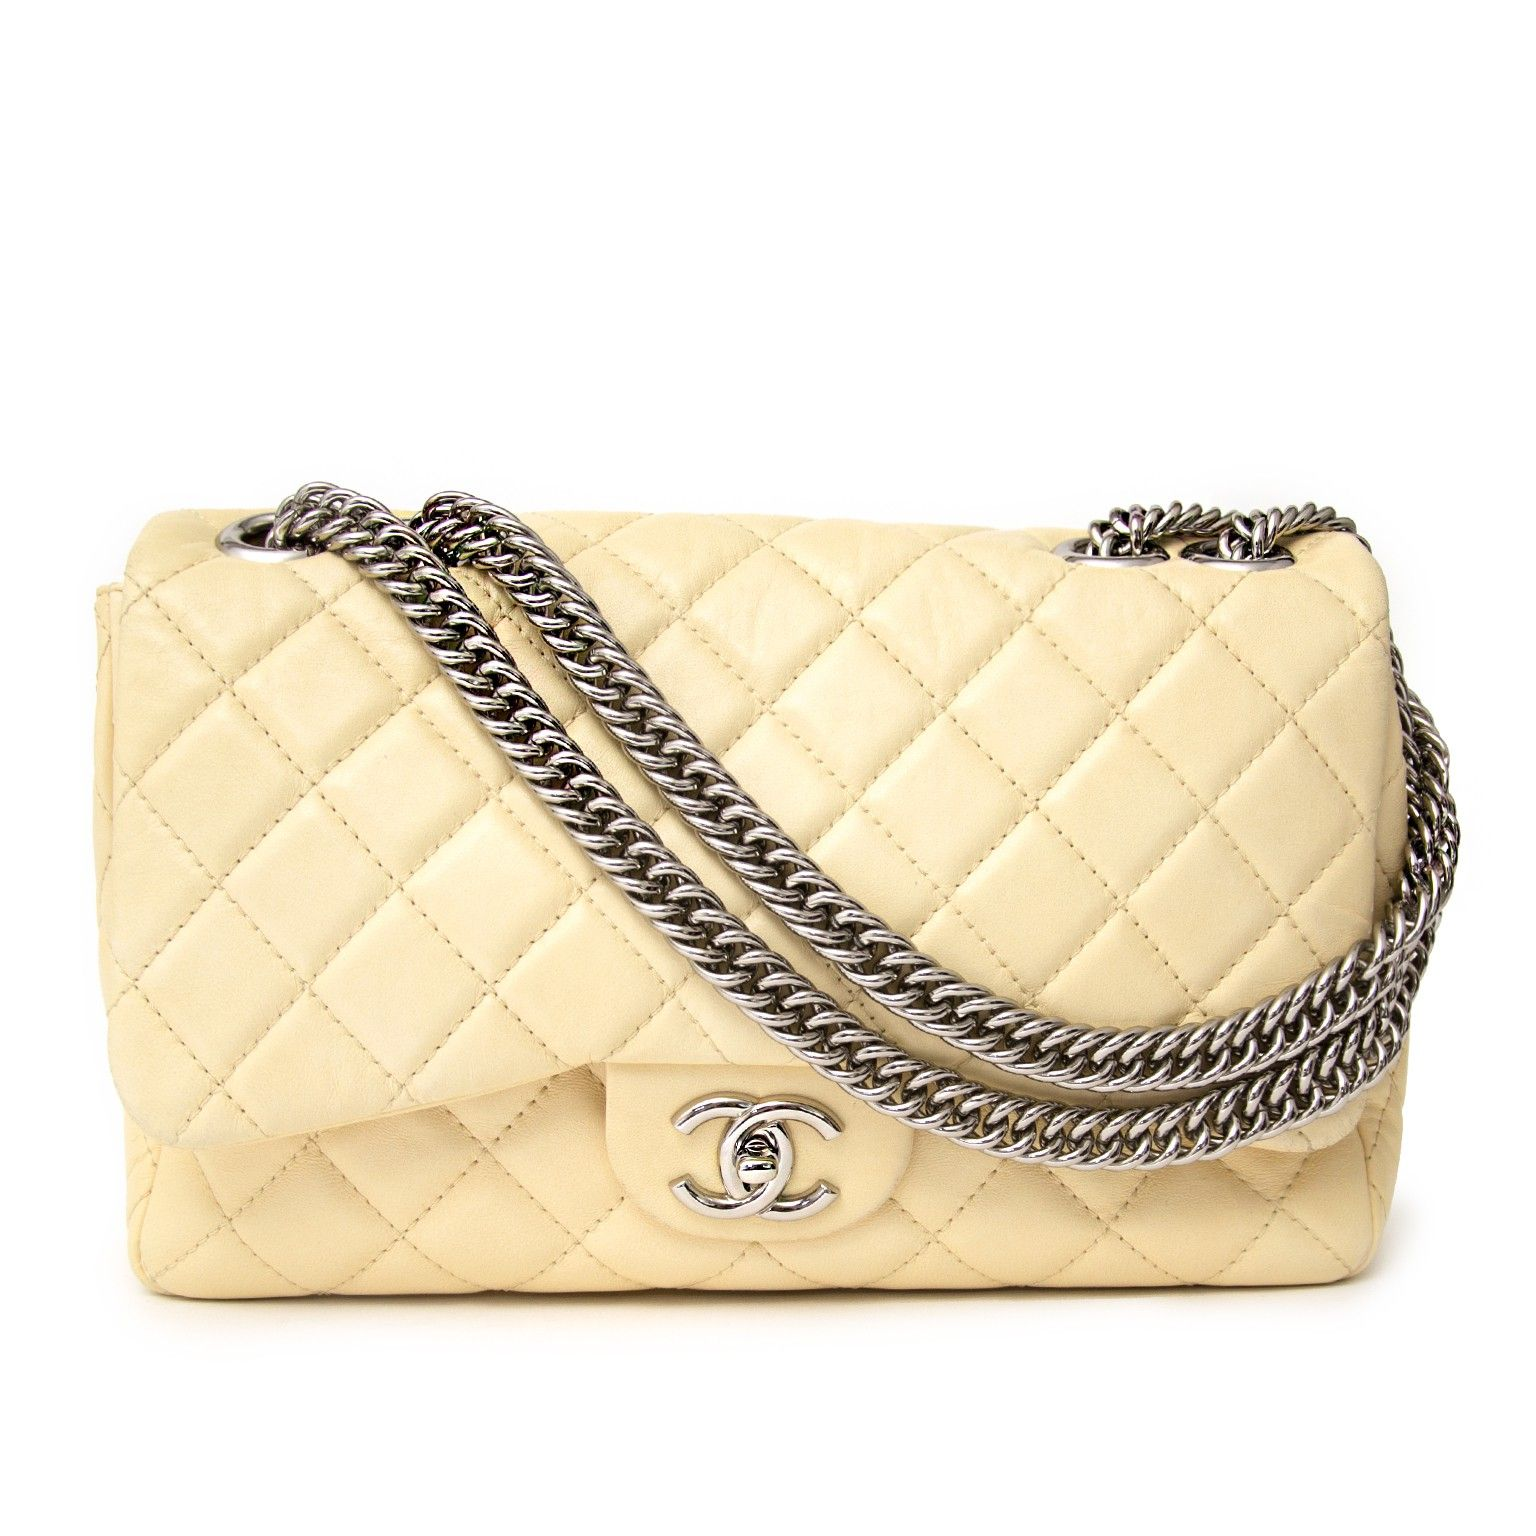 b44f519d Labellov Chanel Cream Soft Jumbo Single Flap Bag ○ Buy and Sell ...